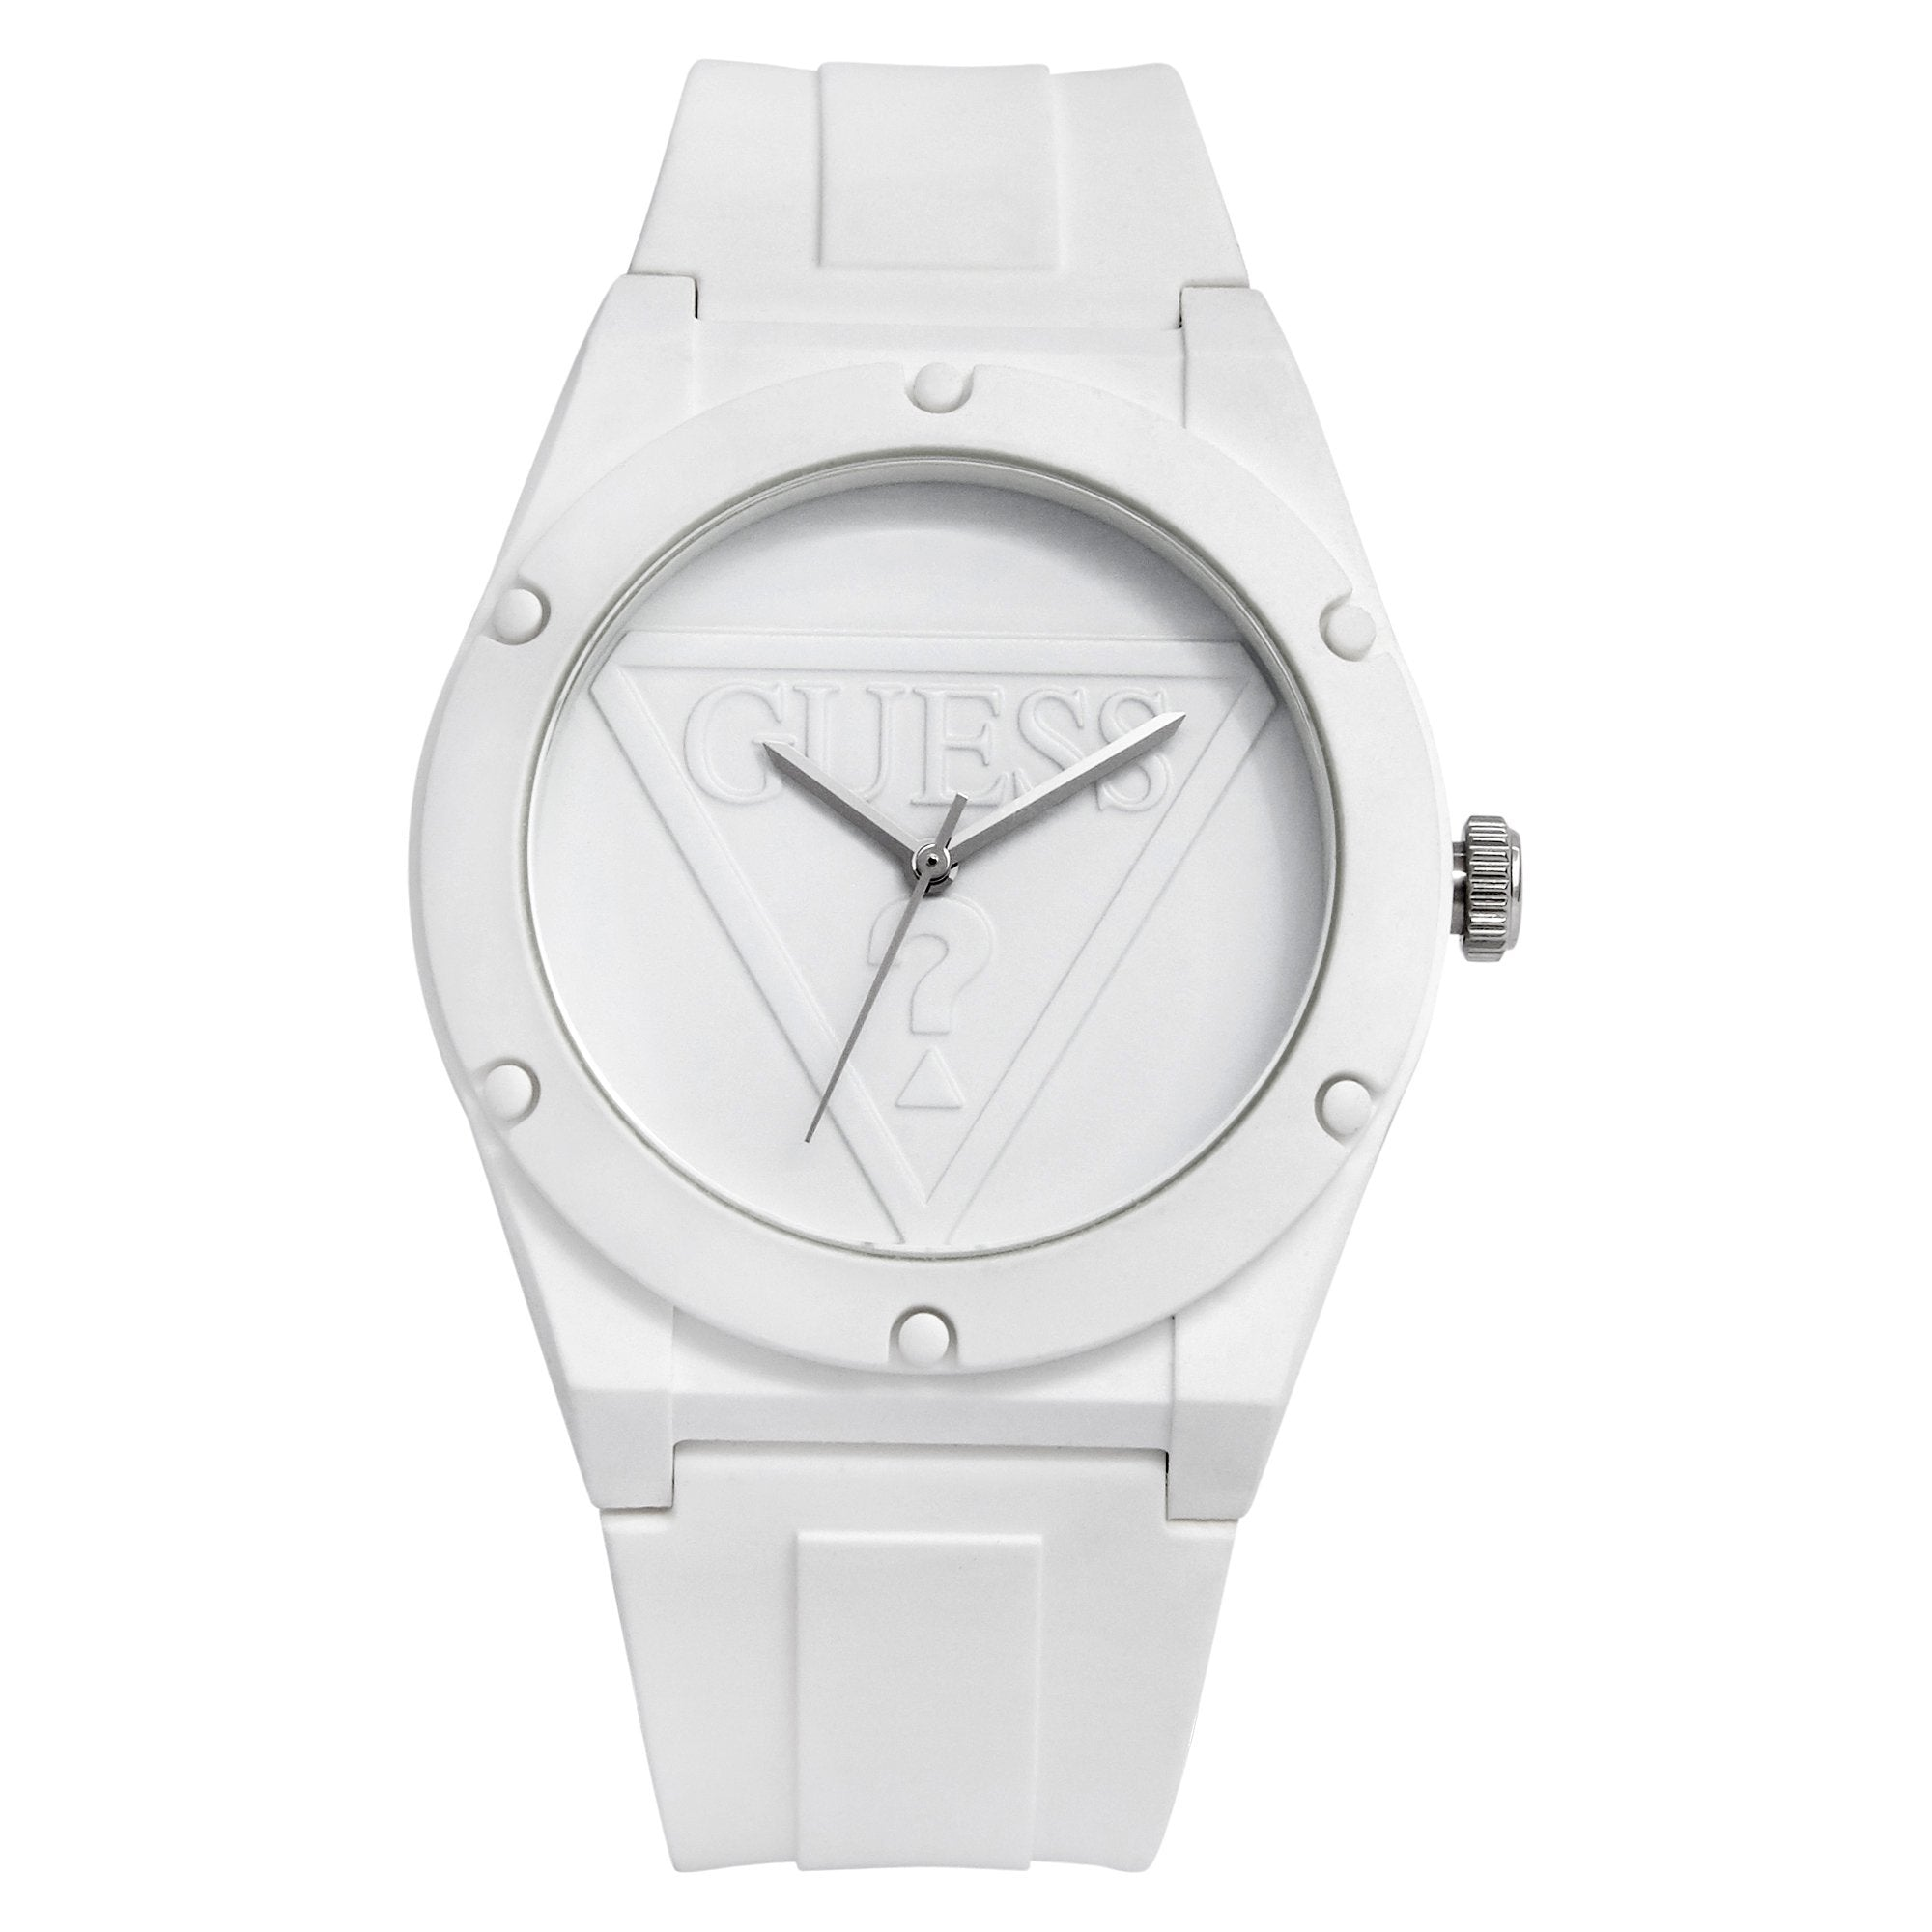 Guess Retro Pop Wht Wht Silc Watches Isbister & Co Wholesale